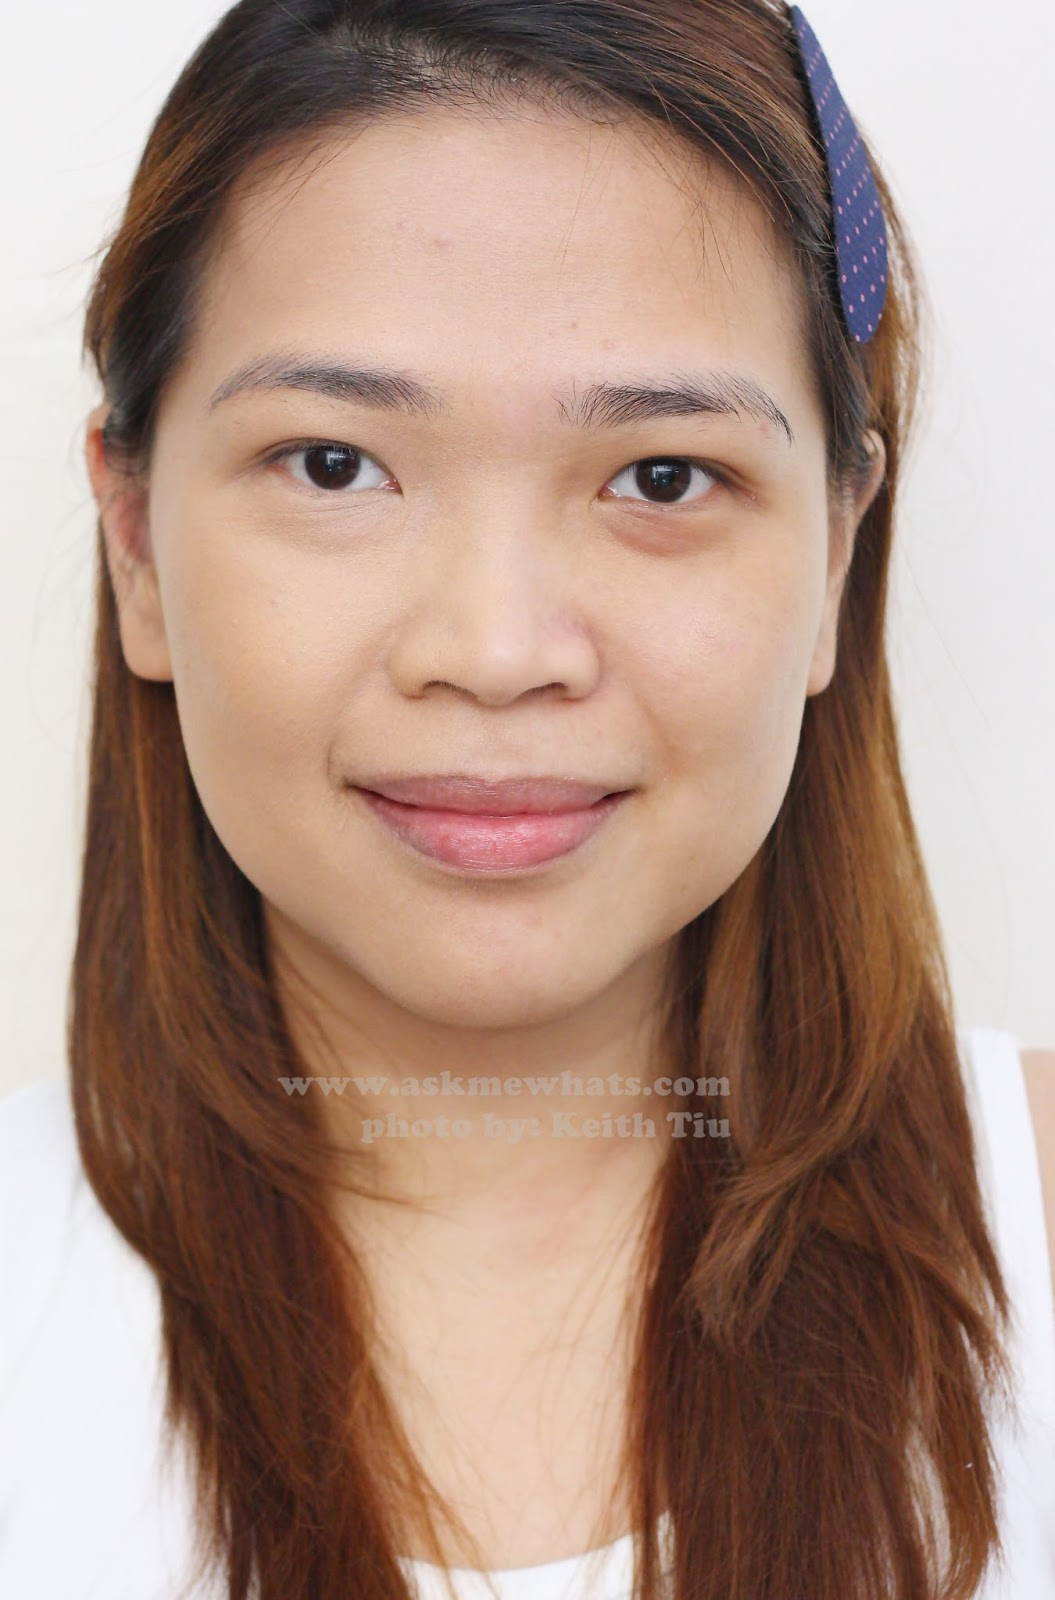 Askmewhats Top Beauty Blogger Philippines Skincare Makeup Review Revlon Photoready Airbrush Effect Nude I Will Share My Half Face Test After Using Prime Anti Shine Primer And Foundation